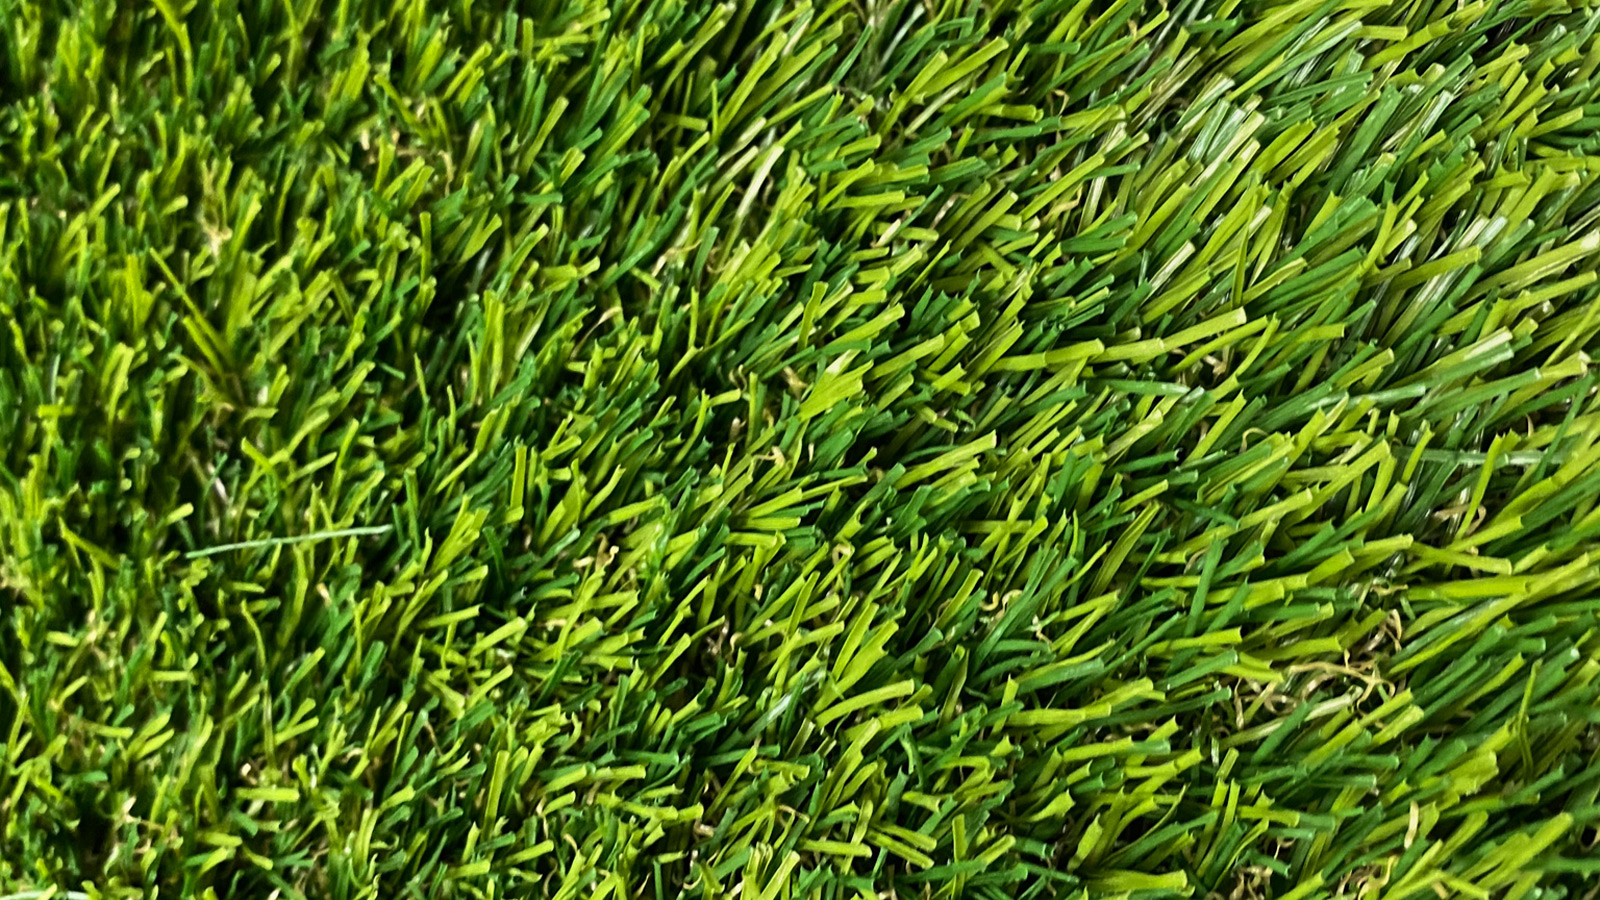 parkside top | Artificial Grass | Eco-Friendly Turf Flooring | The Inside Track